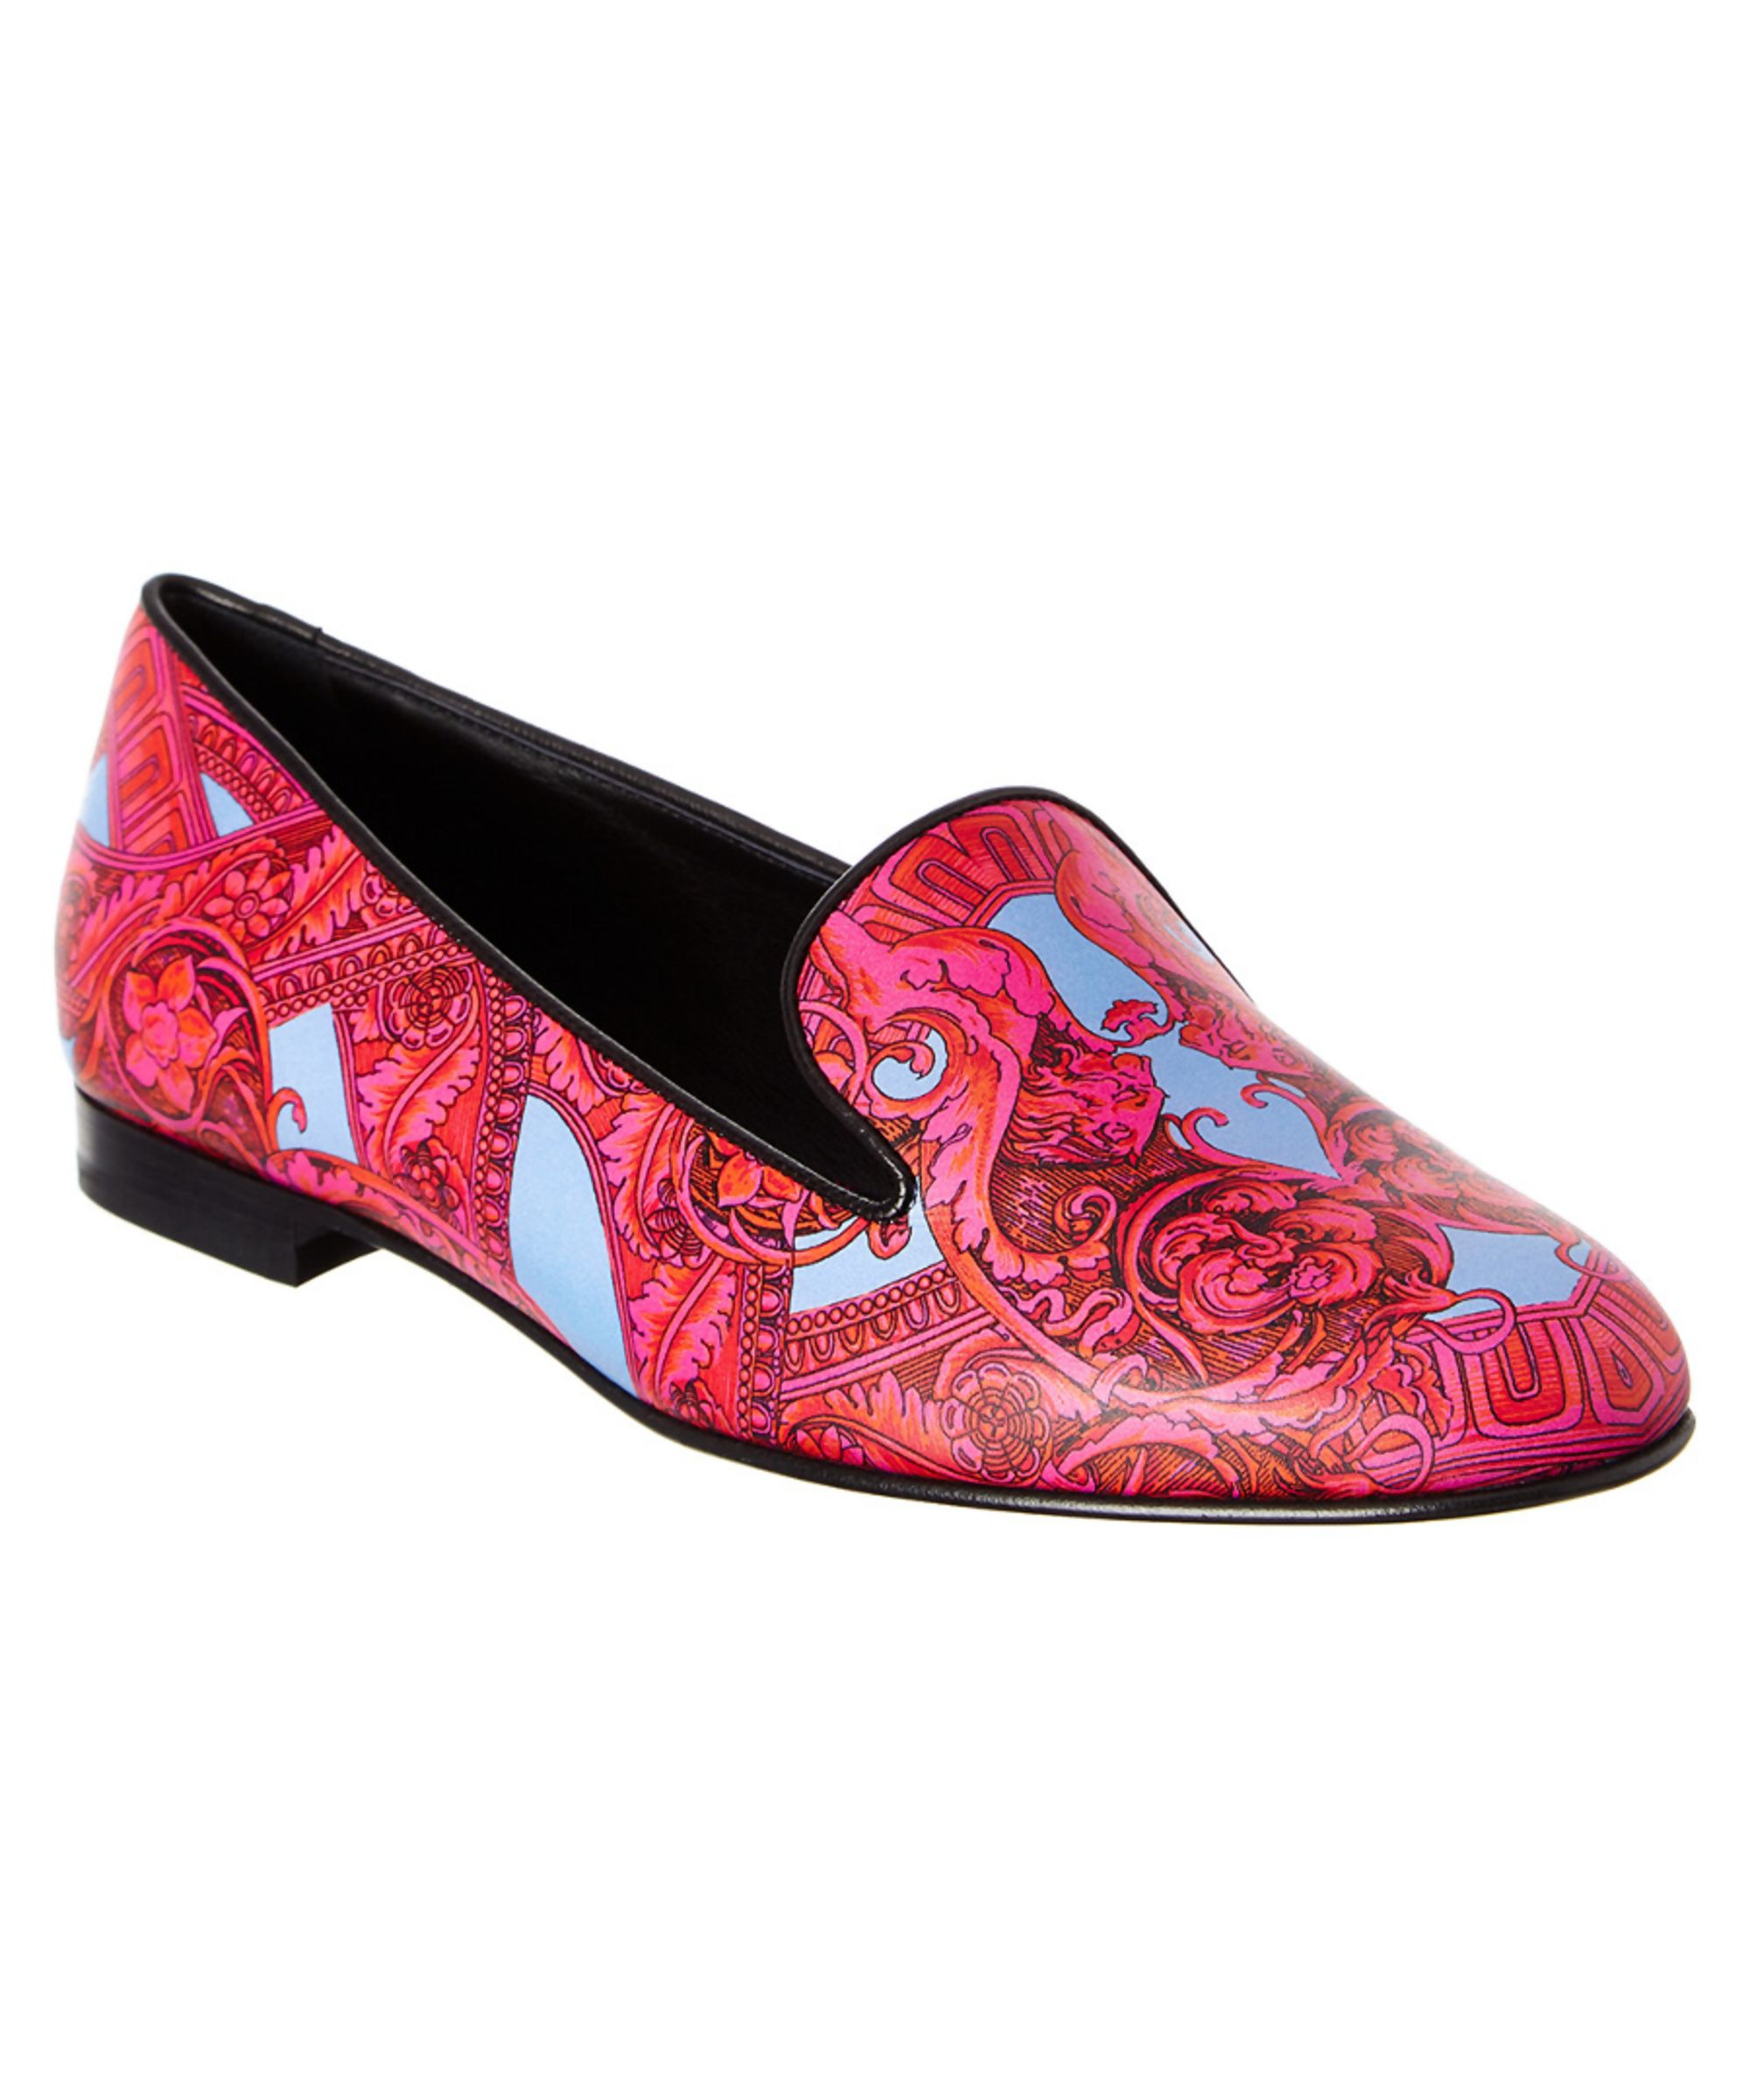 b05c530337 VERSACE | Versace Barocco Is Tante Leather Print Loafer #Shoes #Flats # VERSACE